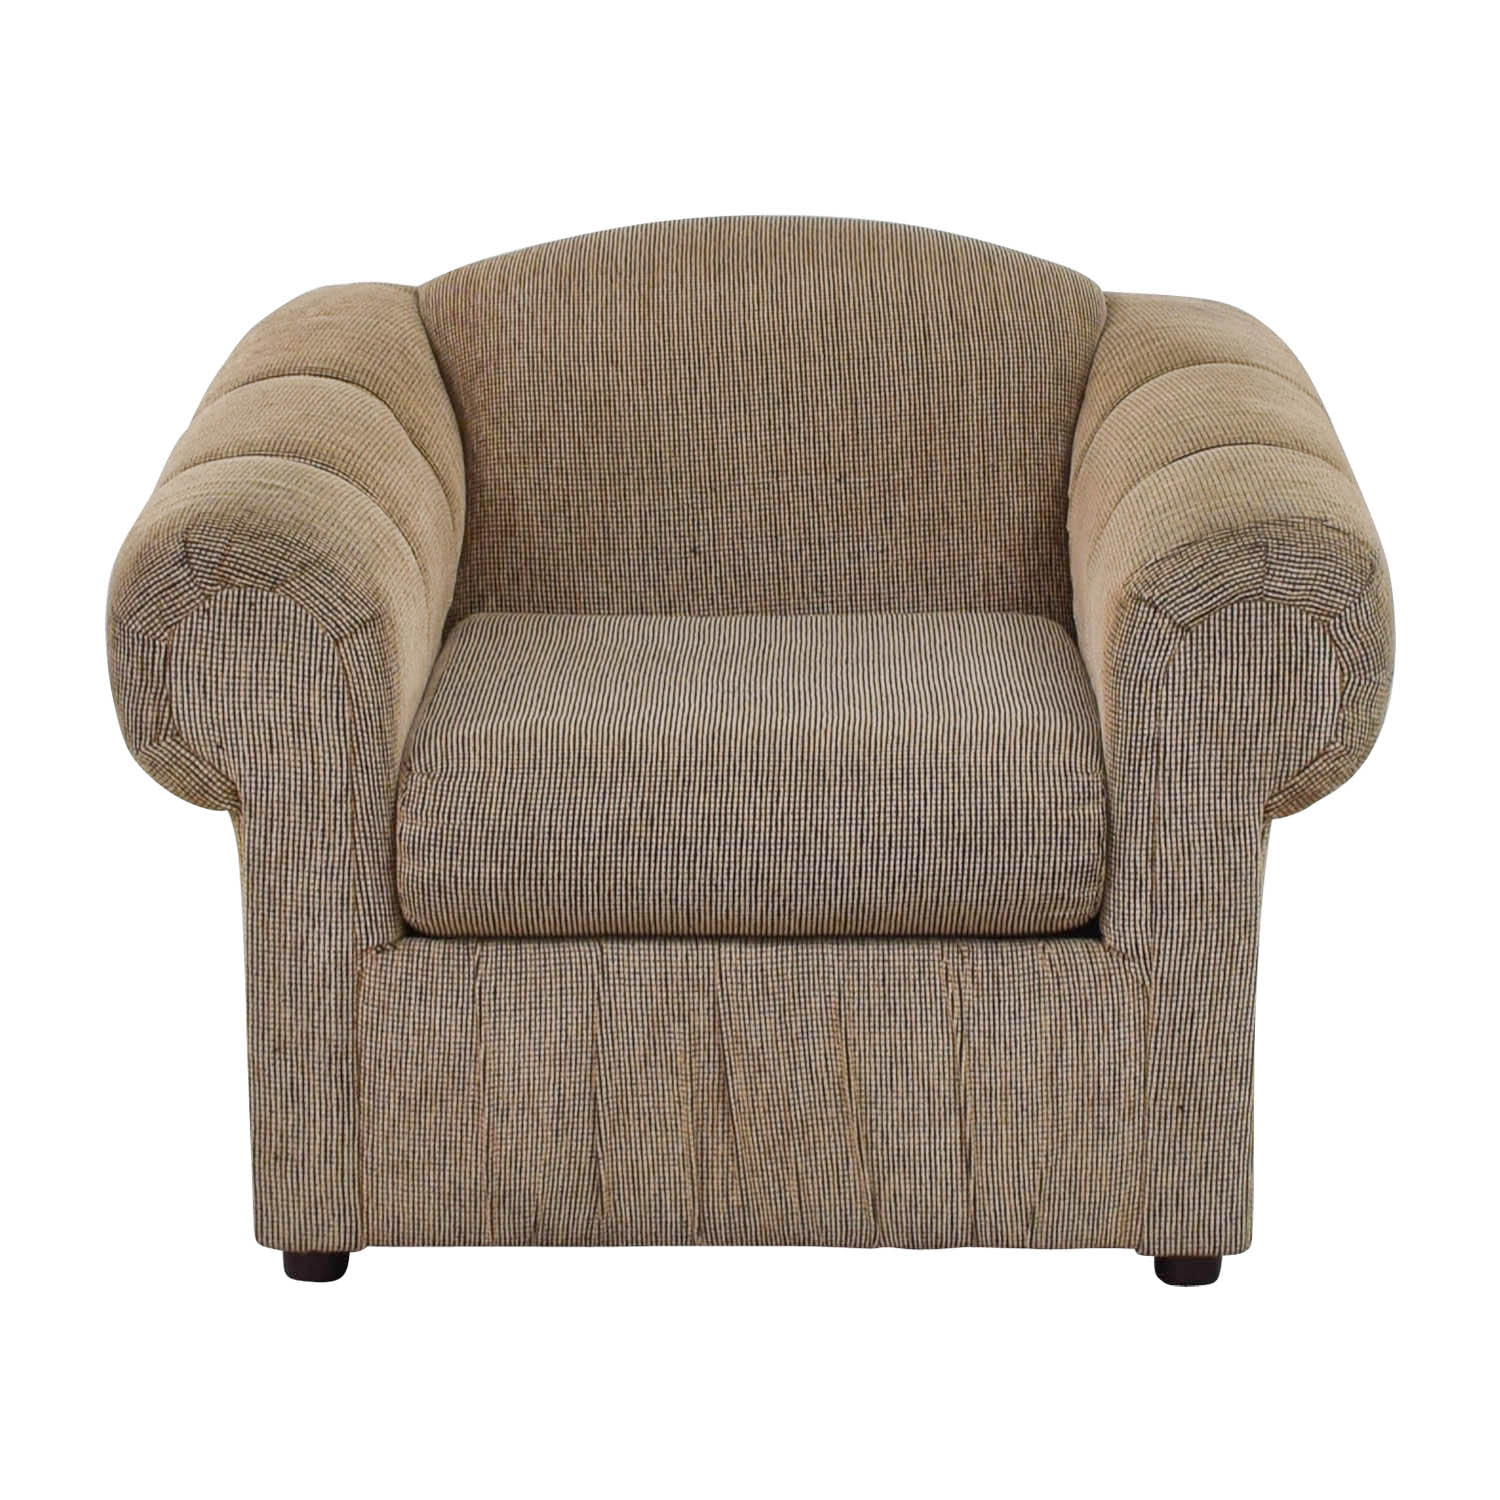 Gentil Tan Rolled Arm Accent Chair Price ...